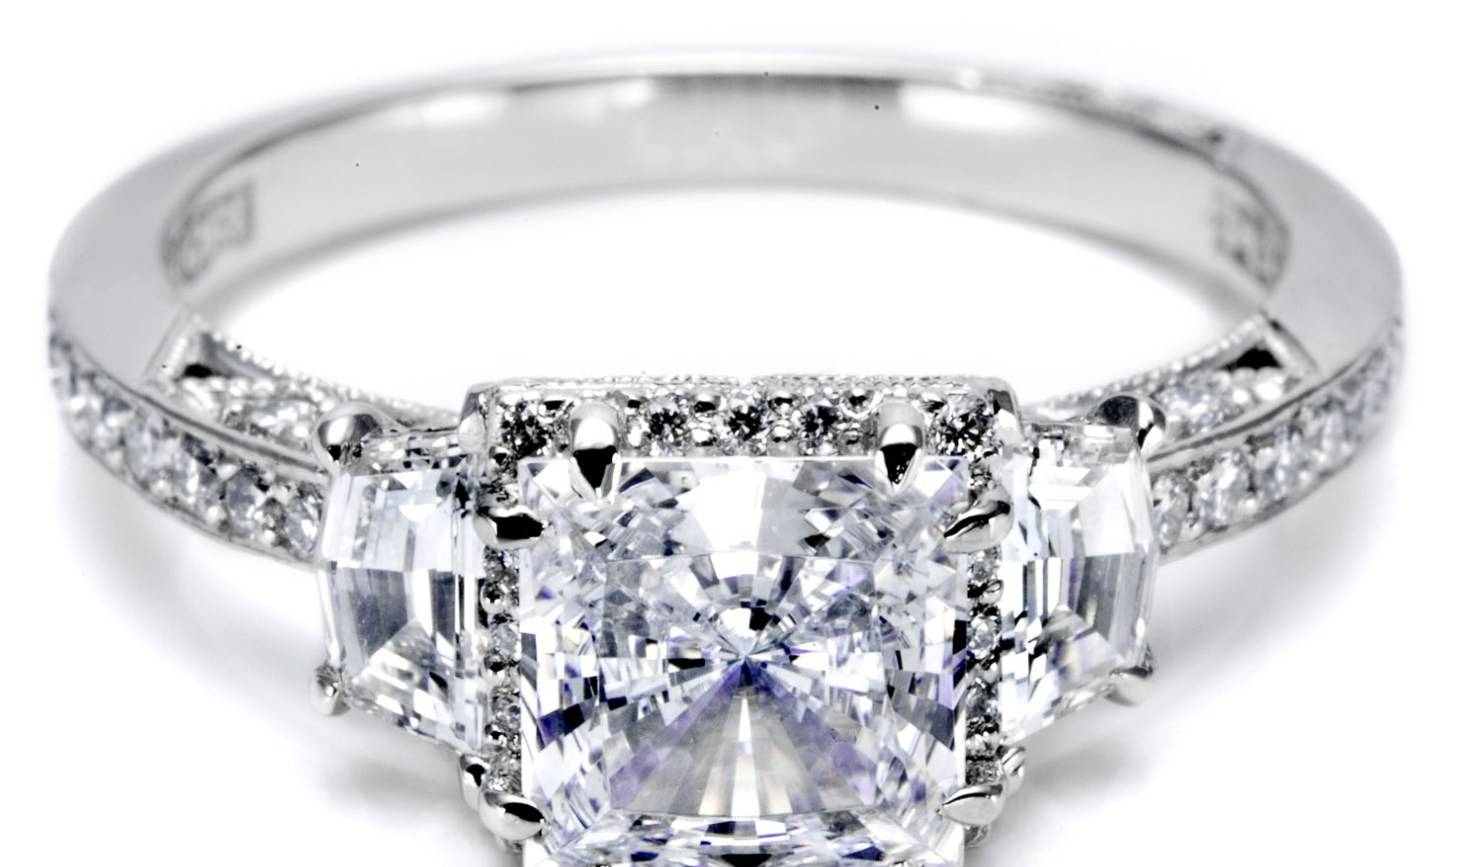 Jewelry Rings: Engagement Rings And Wedding Band Sets Stunning Intended For Cheap Diamond Wedding Bands (View 9 of 15)